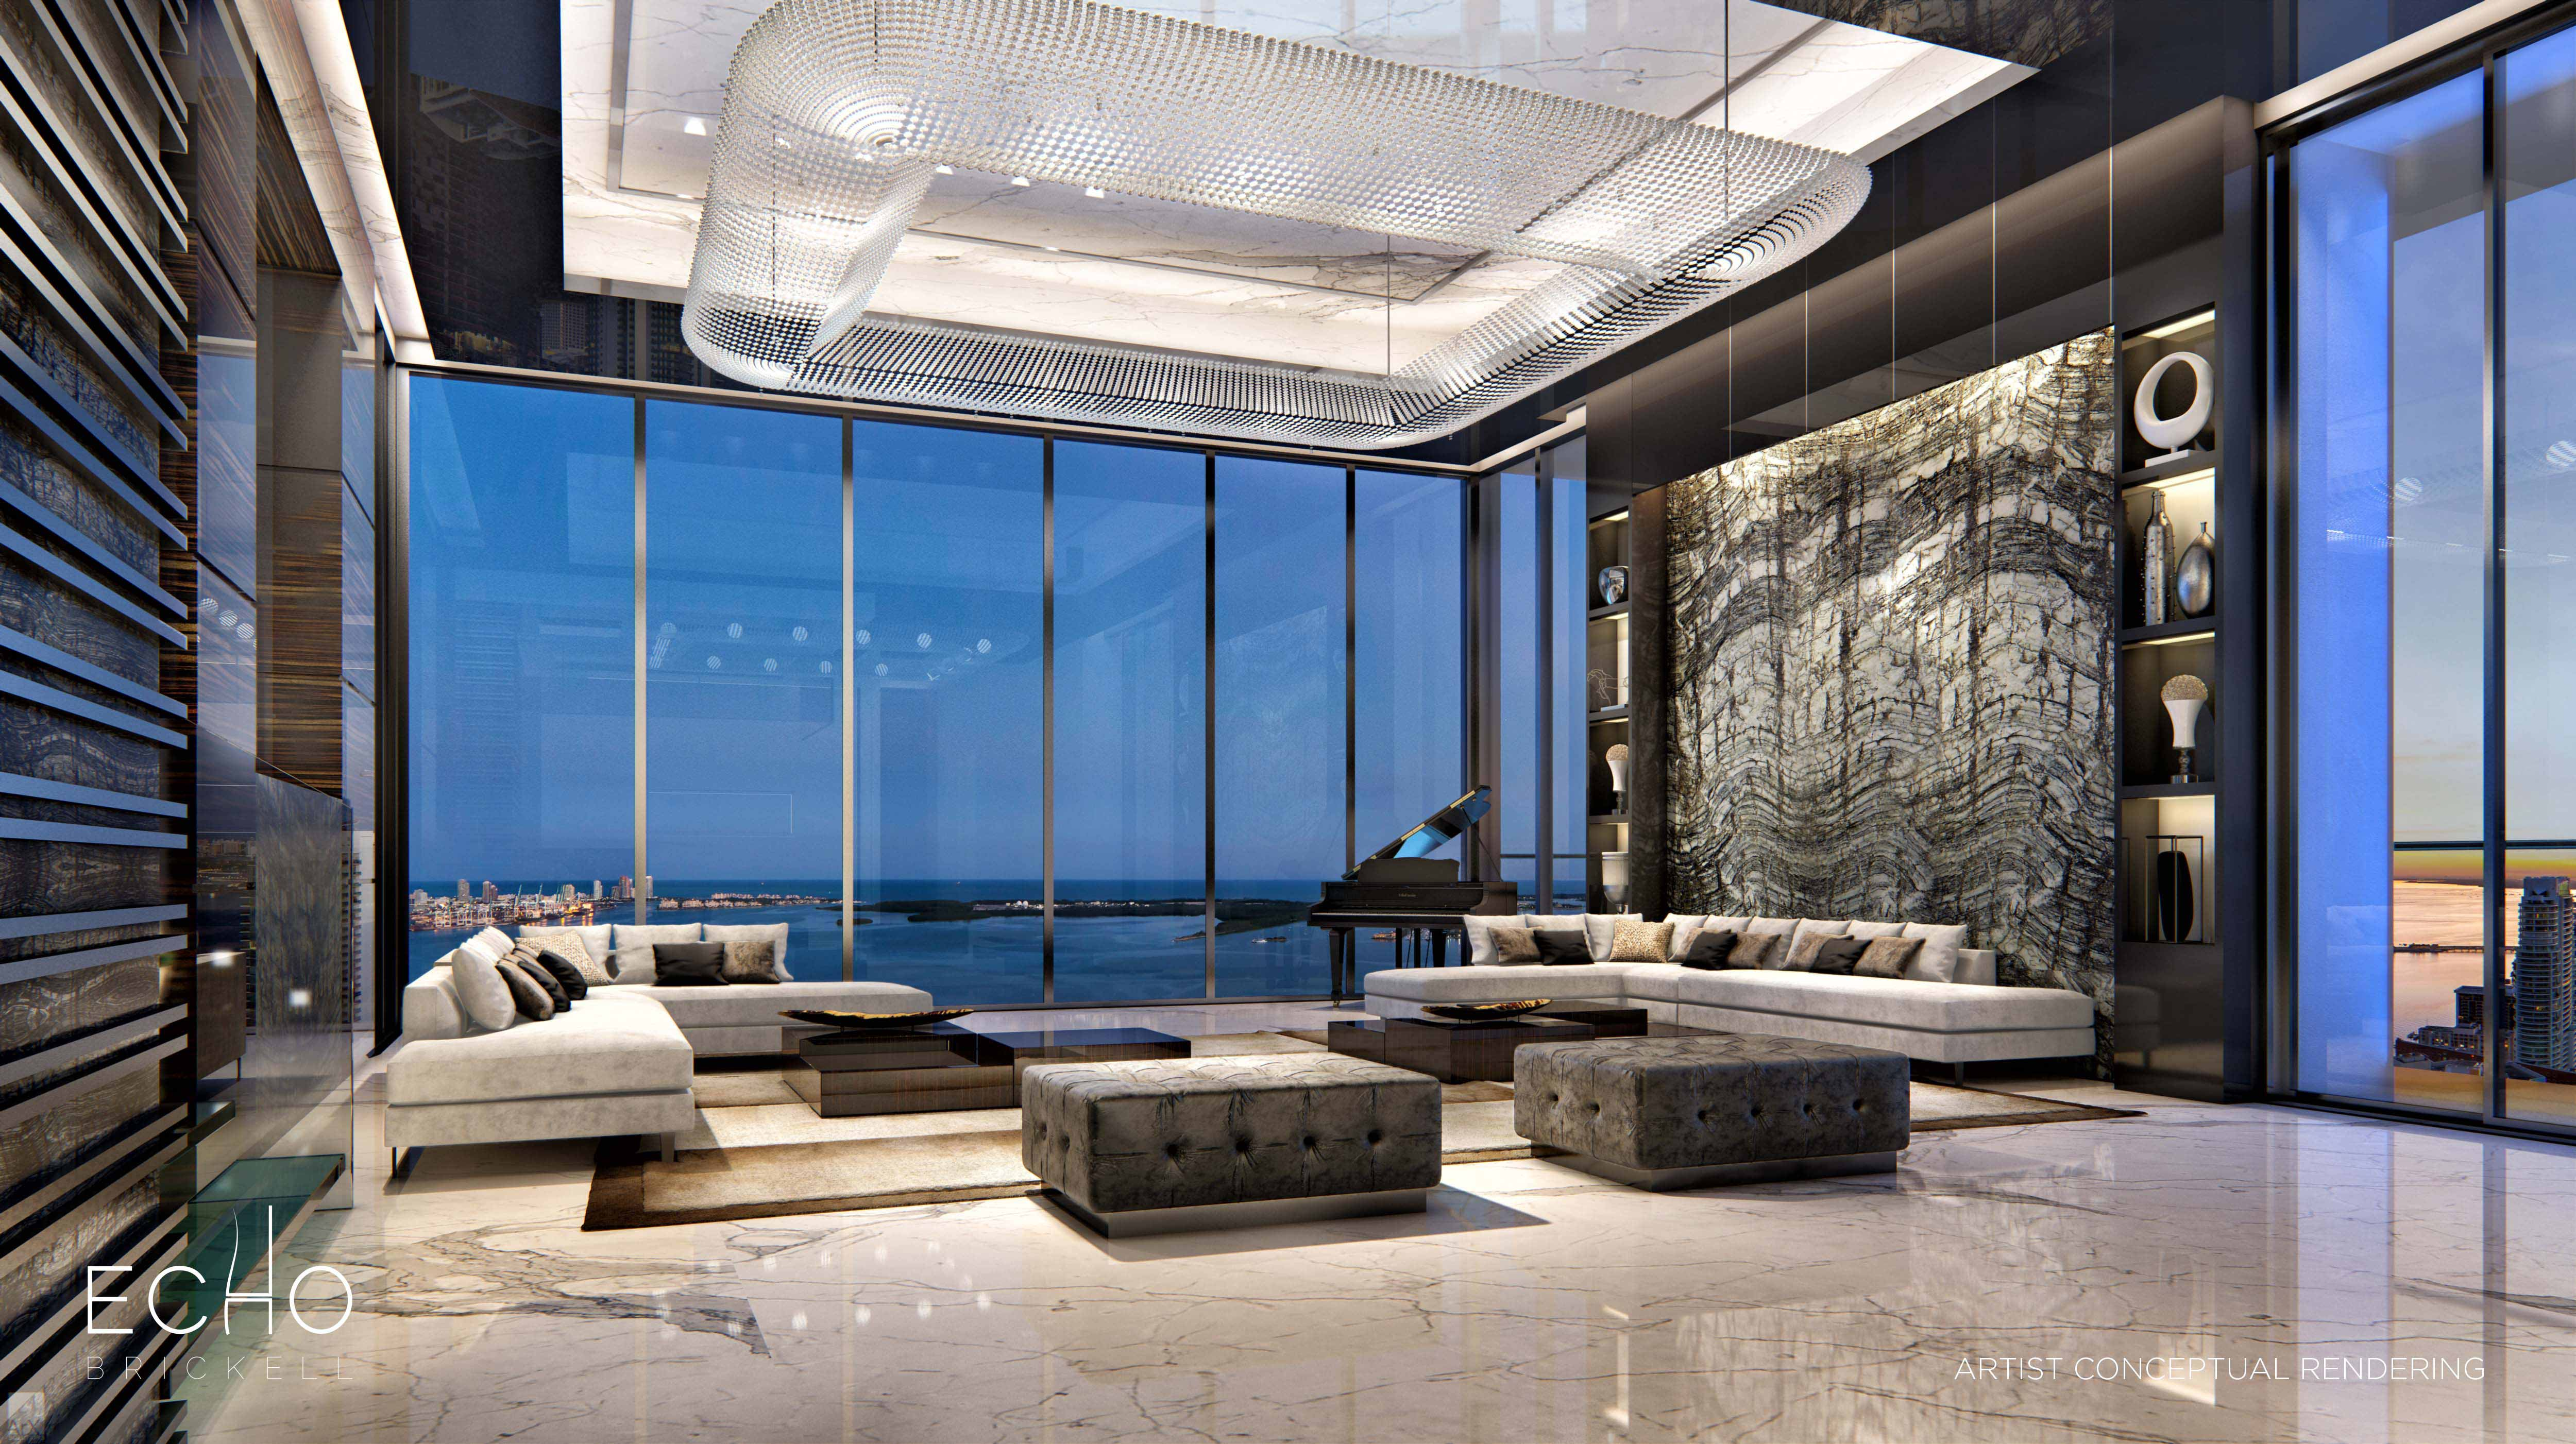 3 Bedroom Condos For Rent Echo Brickell 91 Sold But Exclusive Carlos Ott Penthouse